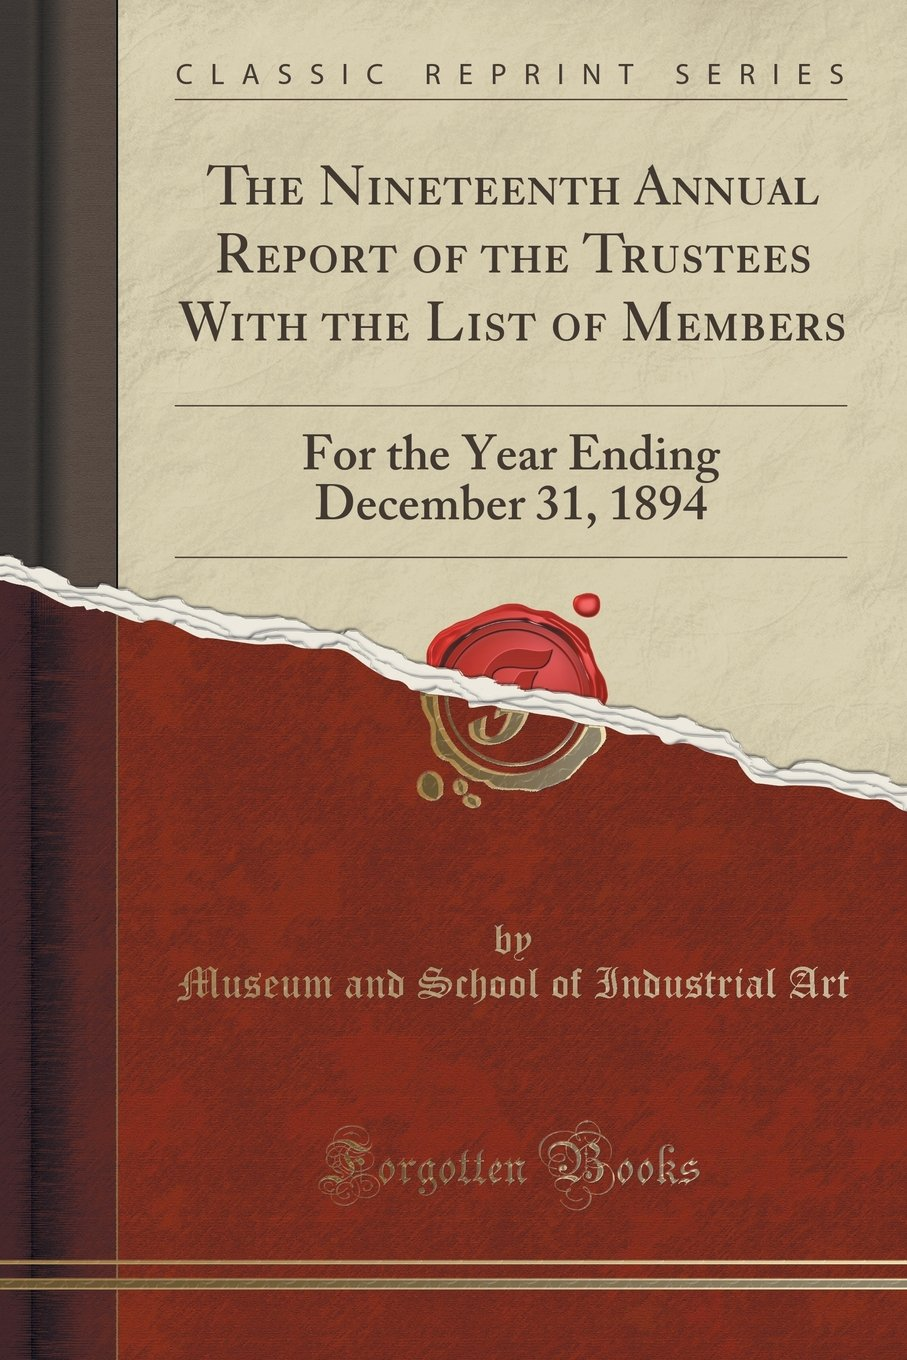 Download The Nineteenth Annual Report of the Trustees With the List of Members: For the Year Ending December 31, 1894 (Classic Reprint) pdf